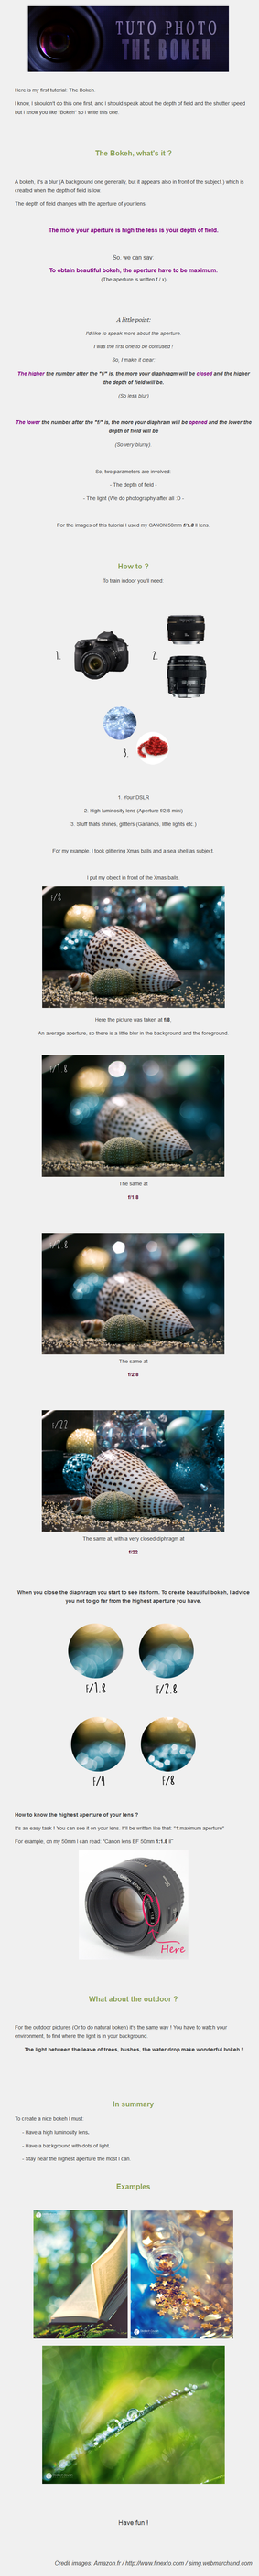 The mysterious Bokeh - Reedited from my website by andokadesbois